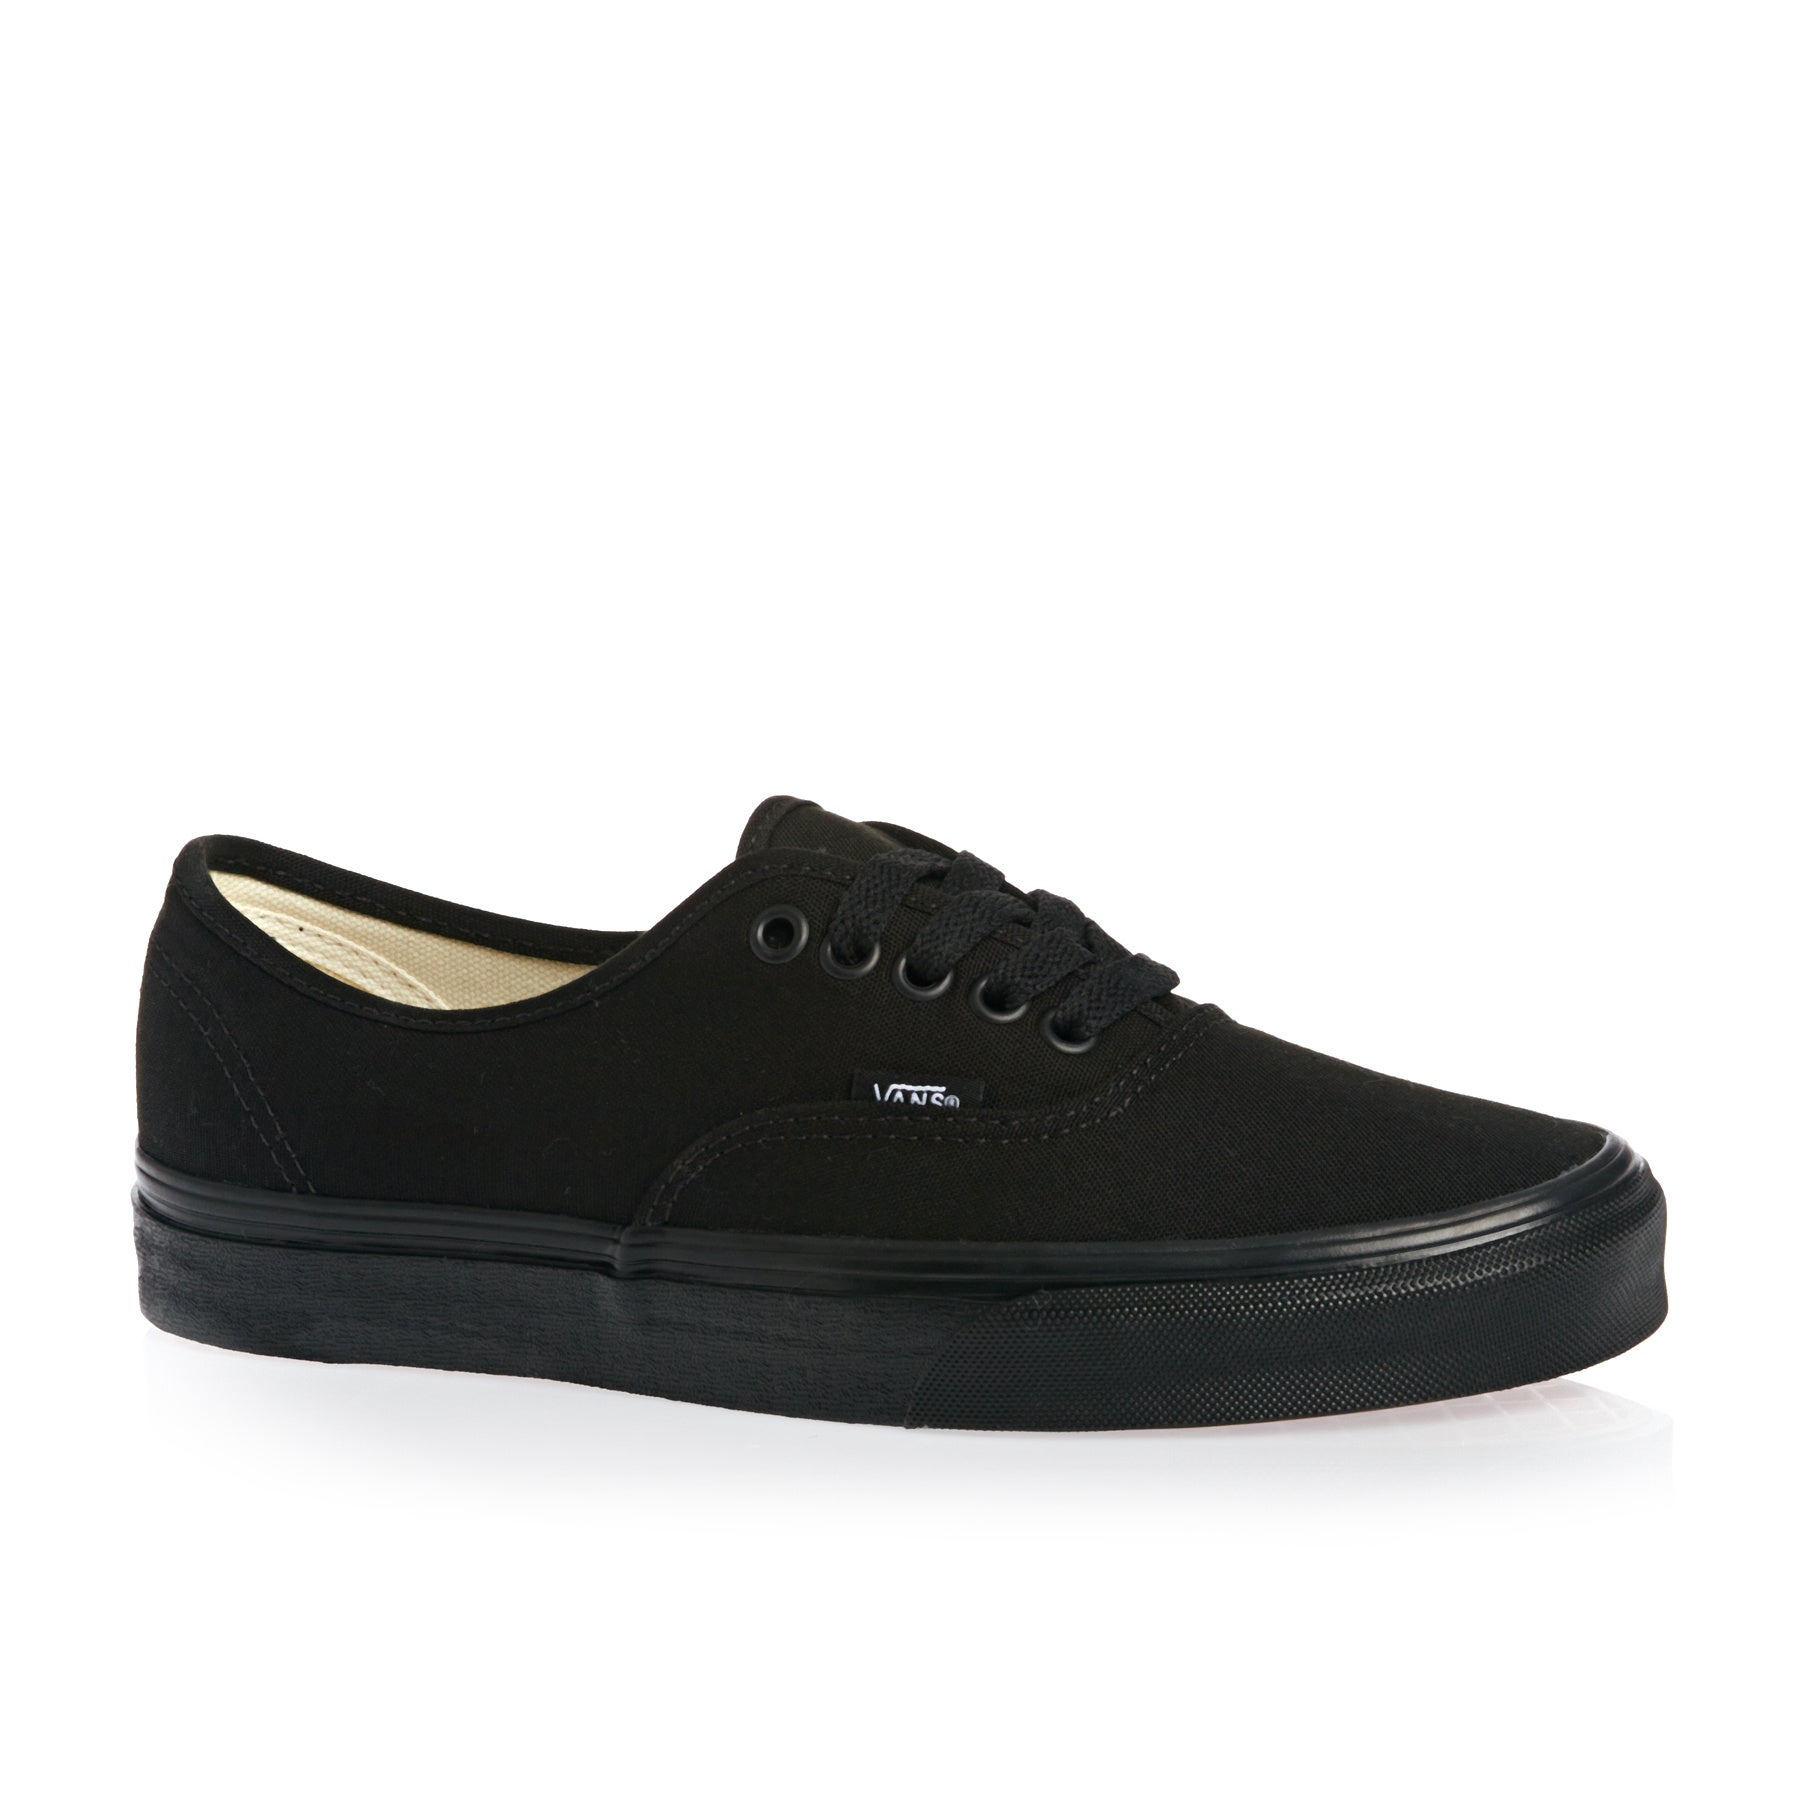 74eed5b6a2 Vans Authentic Shoes available from Surfdome